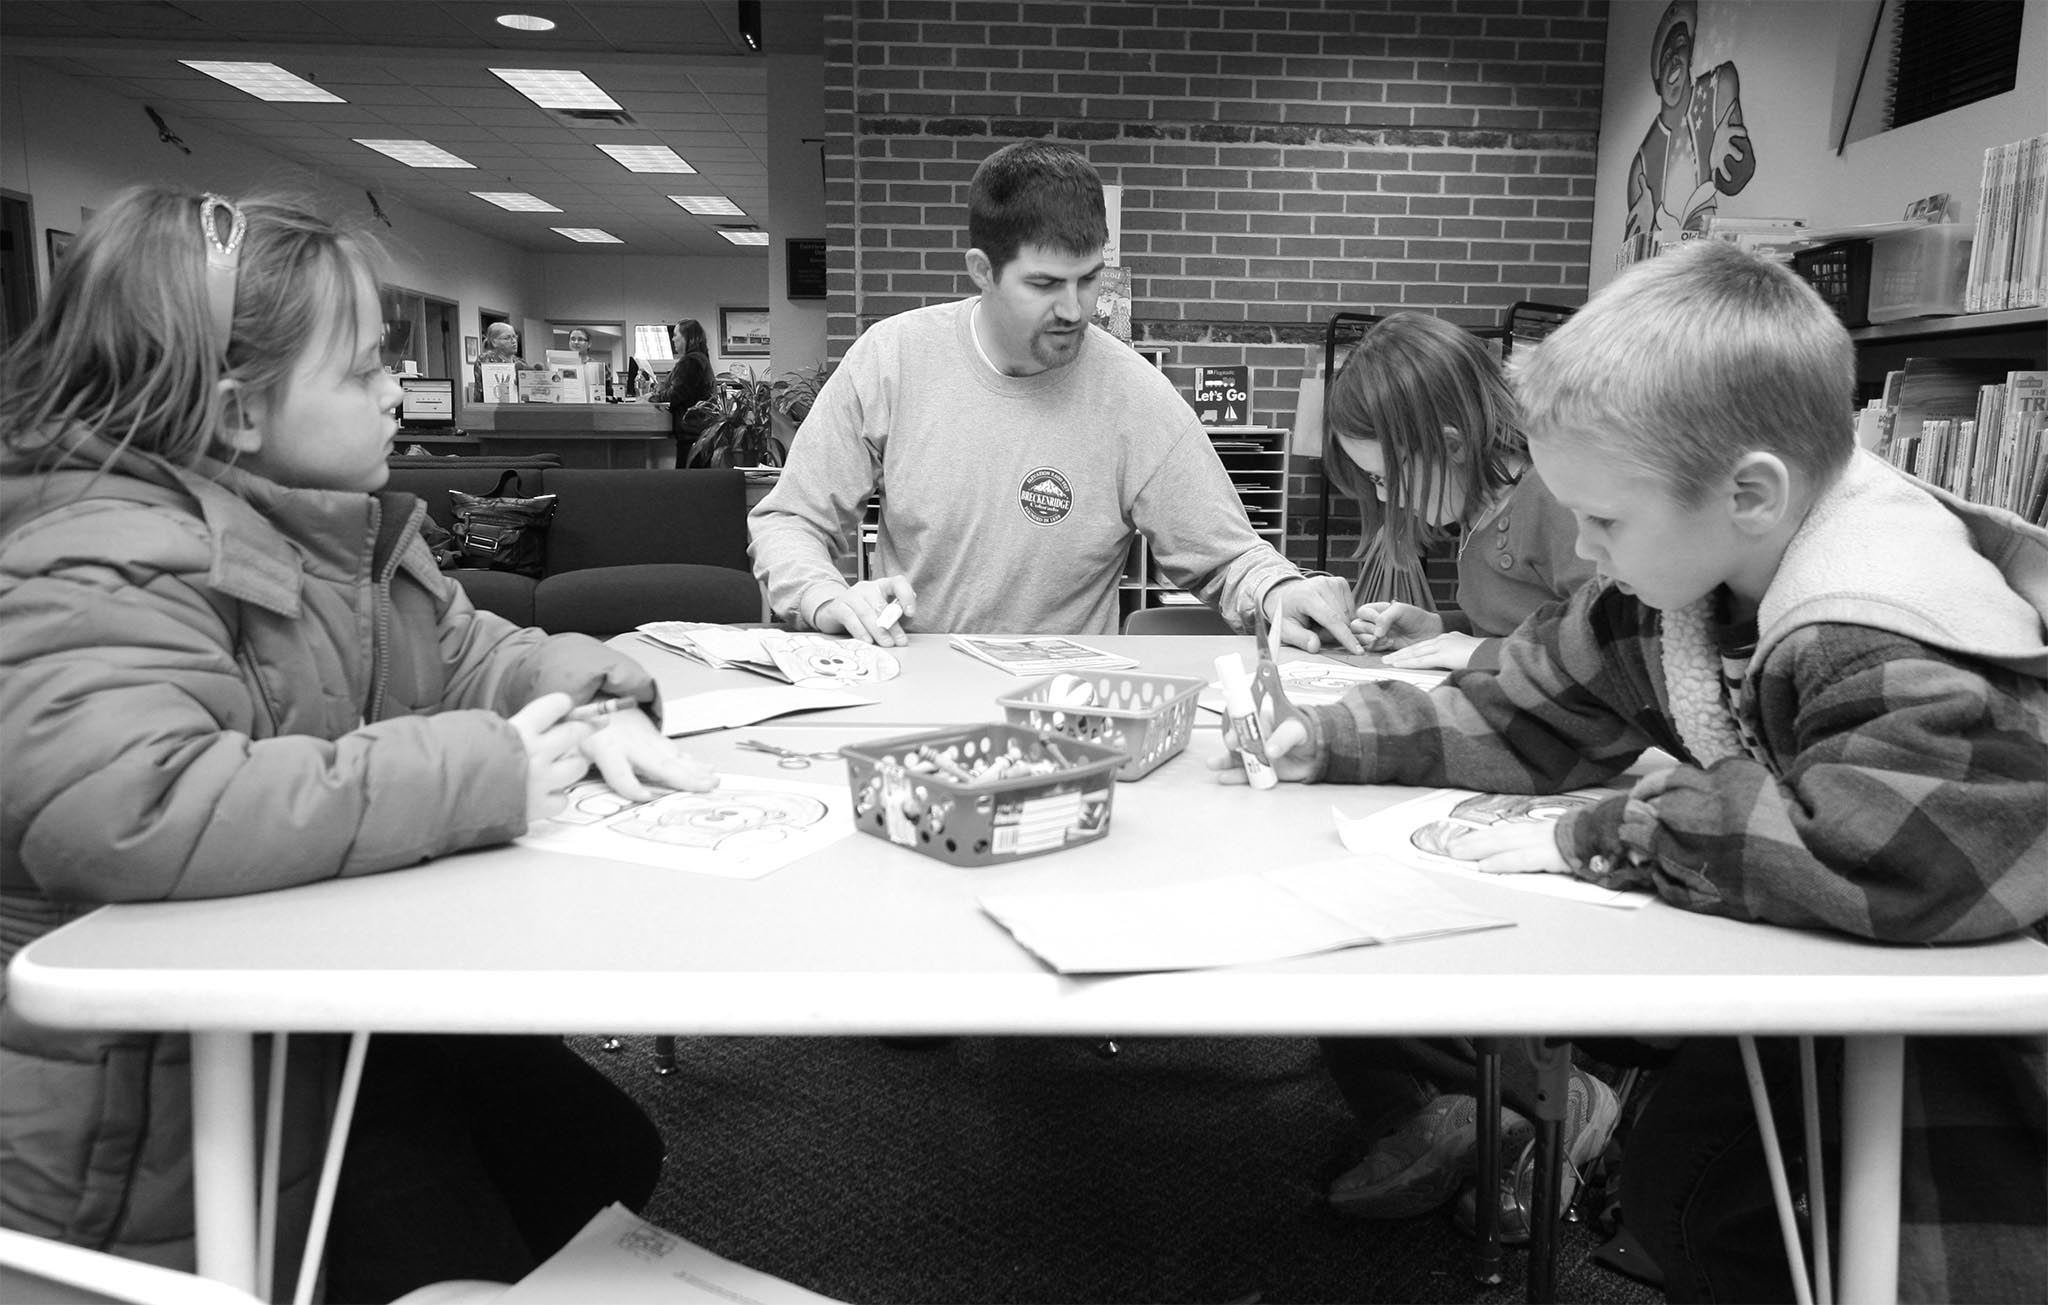 In this January 2012 photo, Major County Farm Bureau Young Farmers & Ranchers member Clint Wilcox (center) helps local children color a farm-themed picture at a local library. County YF&R members also read agricultural books, played farm-themed games and prepared a snack for local grade-school students to help them understand the importance of agriculture in their local community of Fairview and beyond.